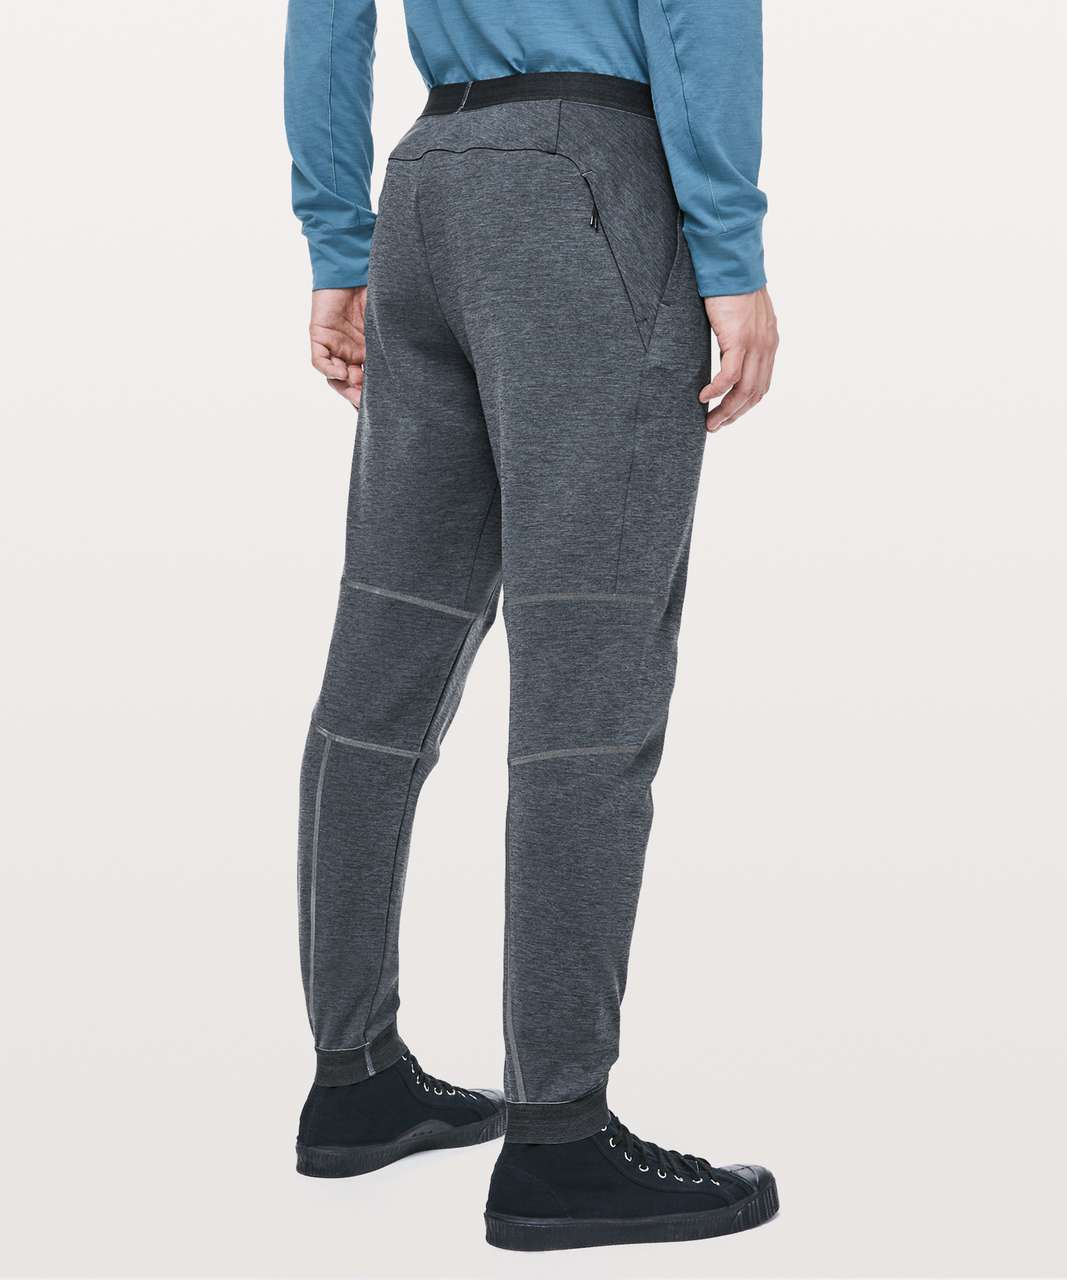 Lululemon Diffract Jogger *lululemon Lab - Mystic Green